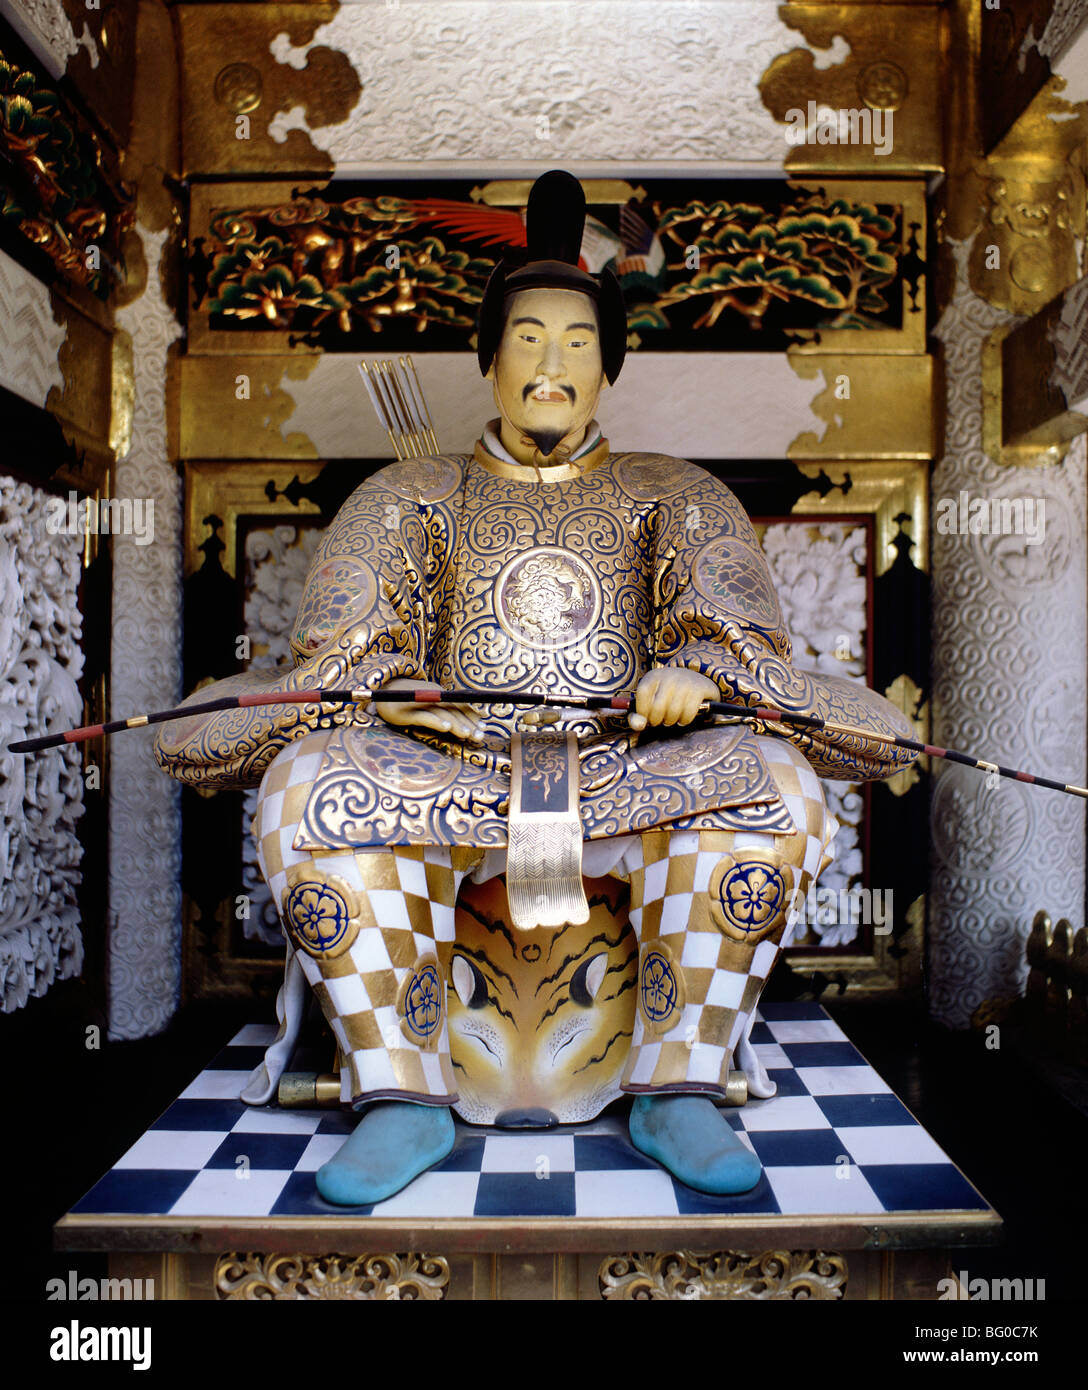 a history of the tokugawa shogunate in japan Tokugawa system helen m hopper history  the bakufu government thus  formed and led by a tokugawa shogun maintained legitimacy through his.